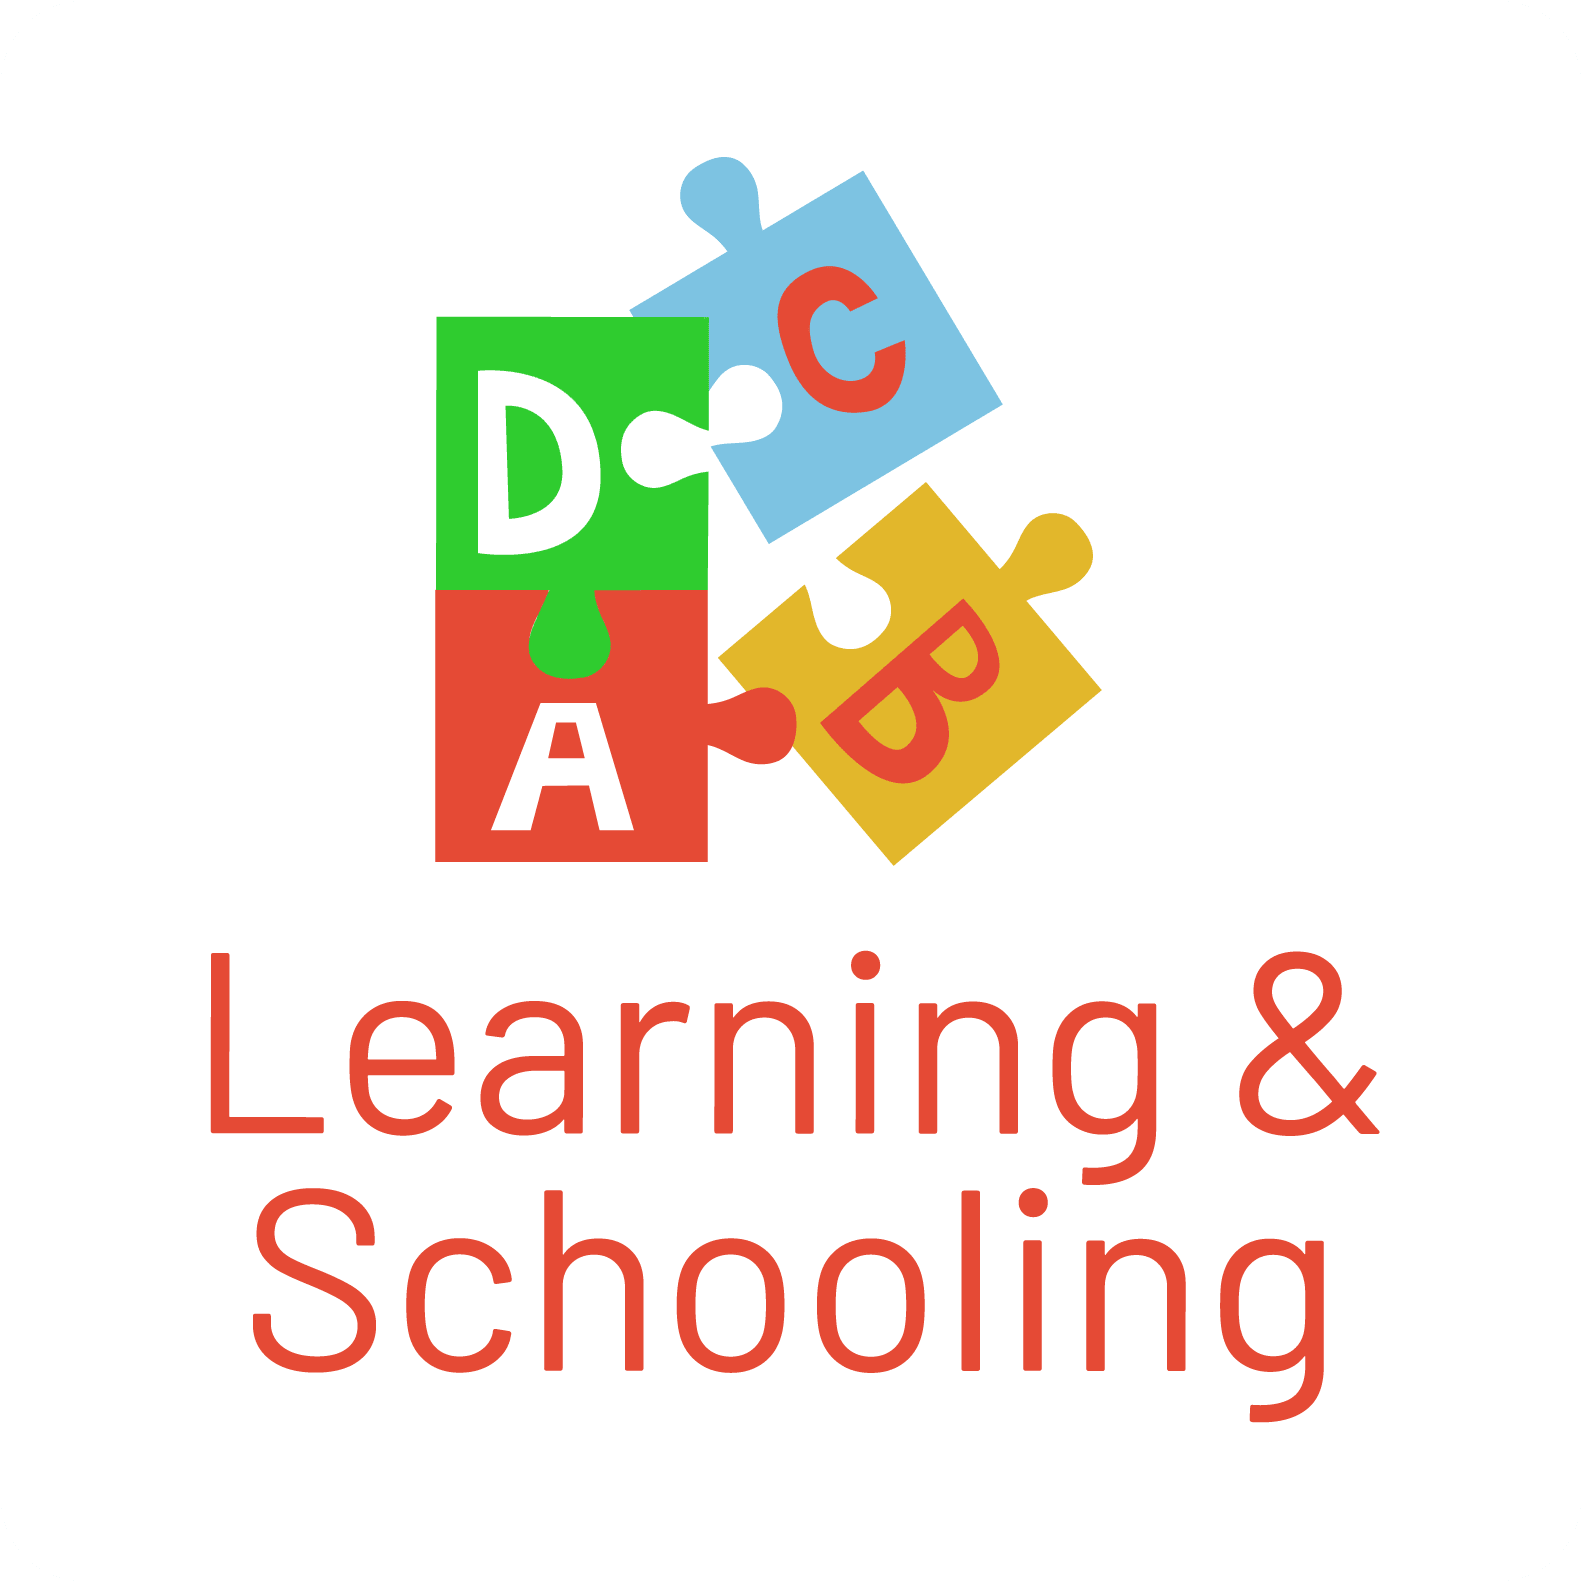 Image for learning & schooling category